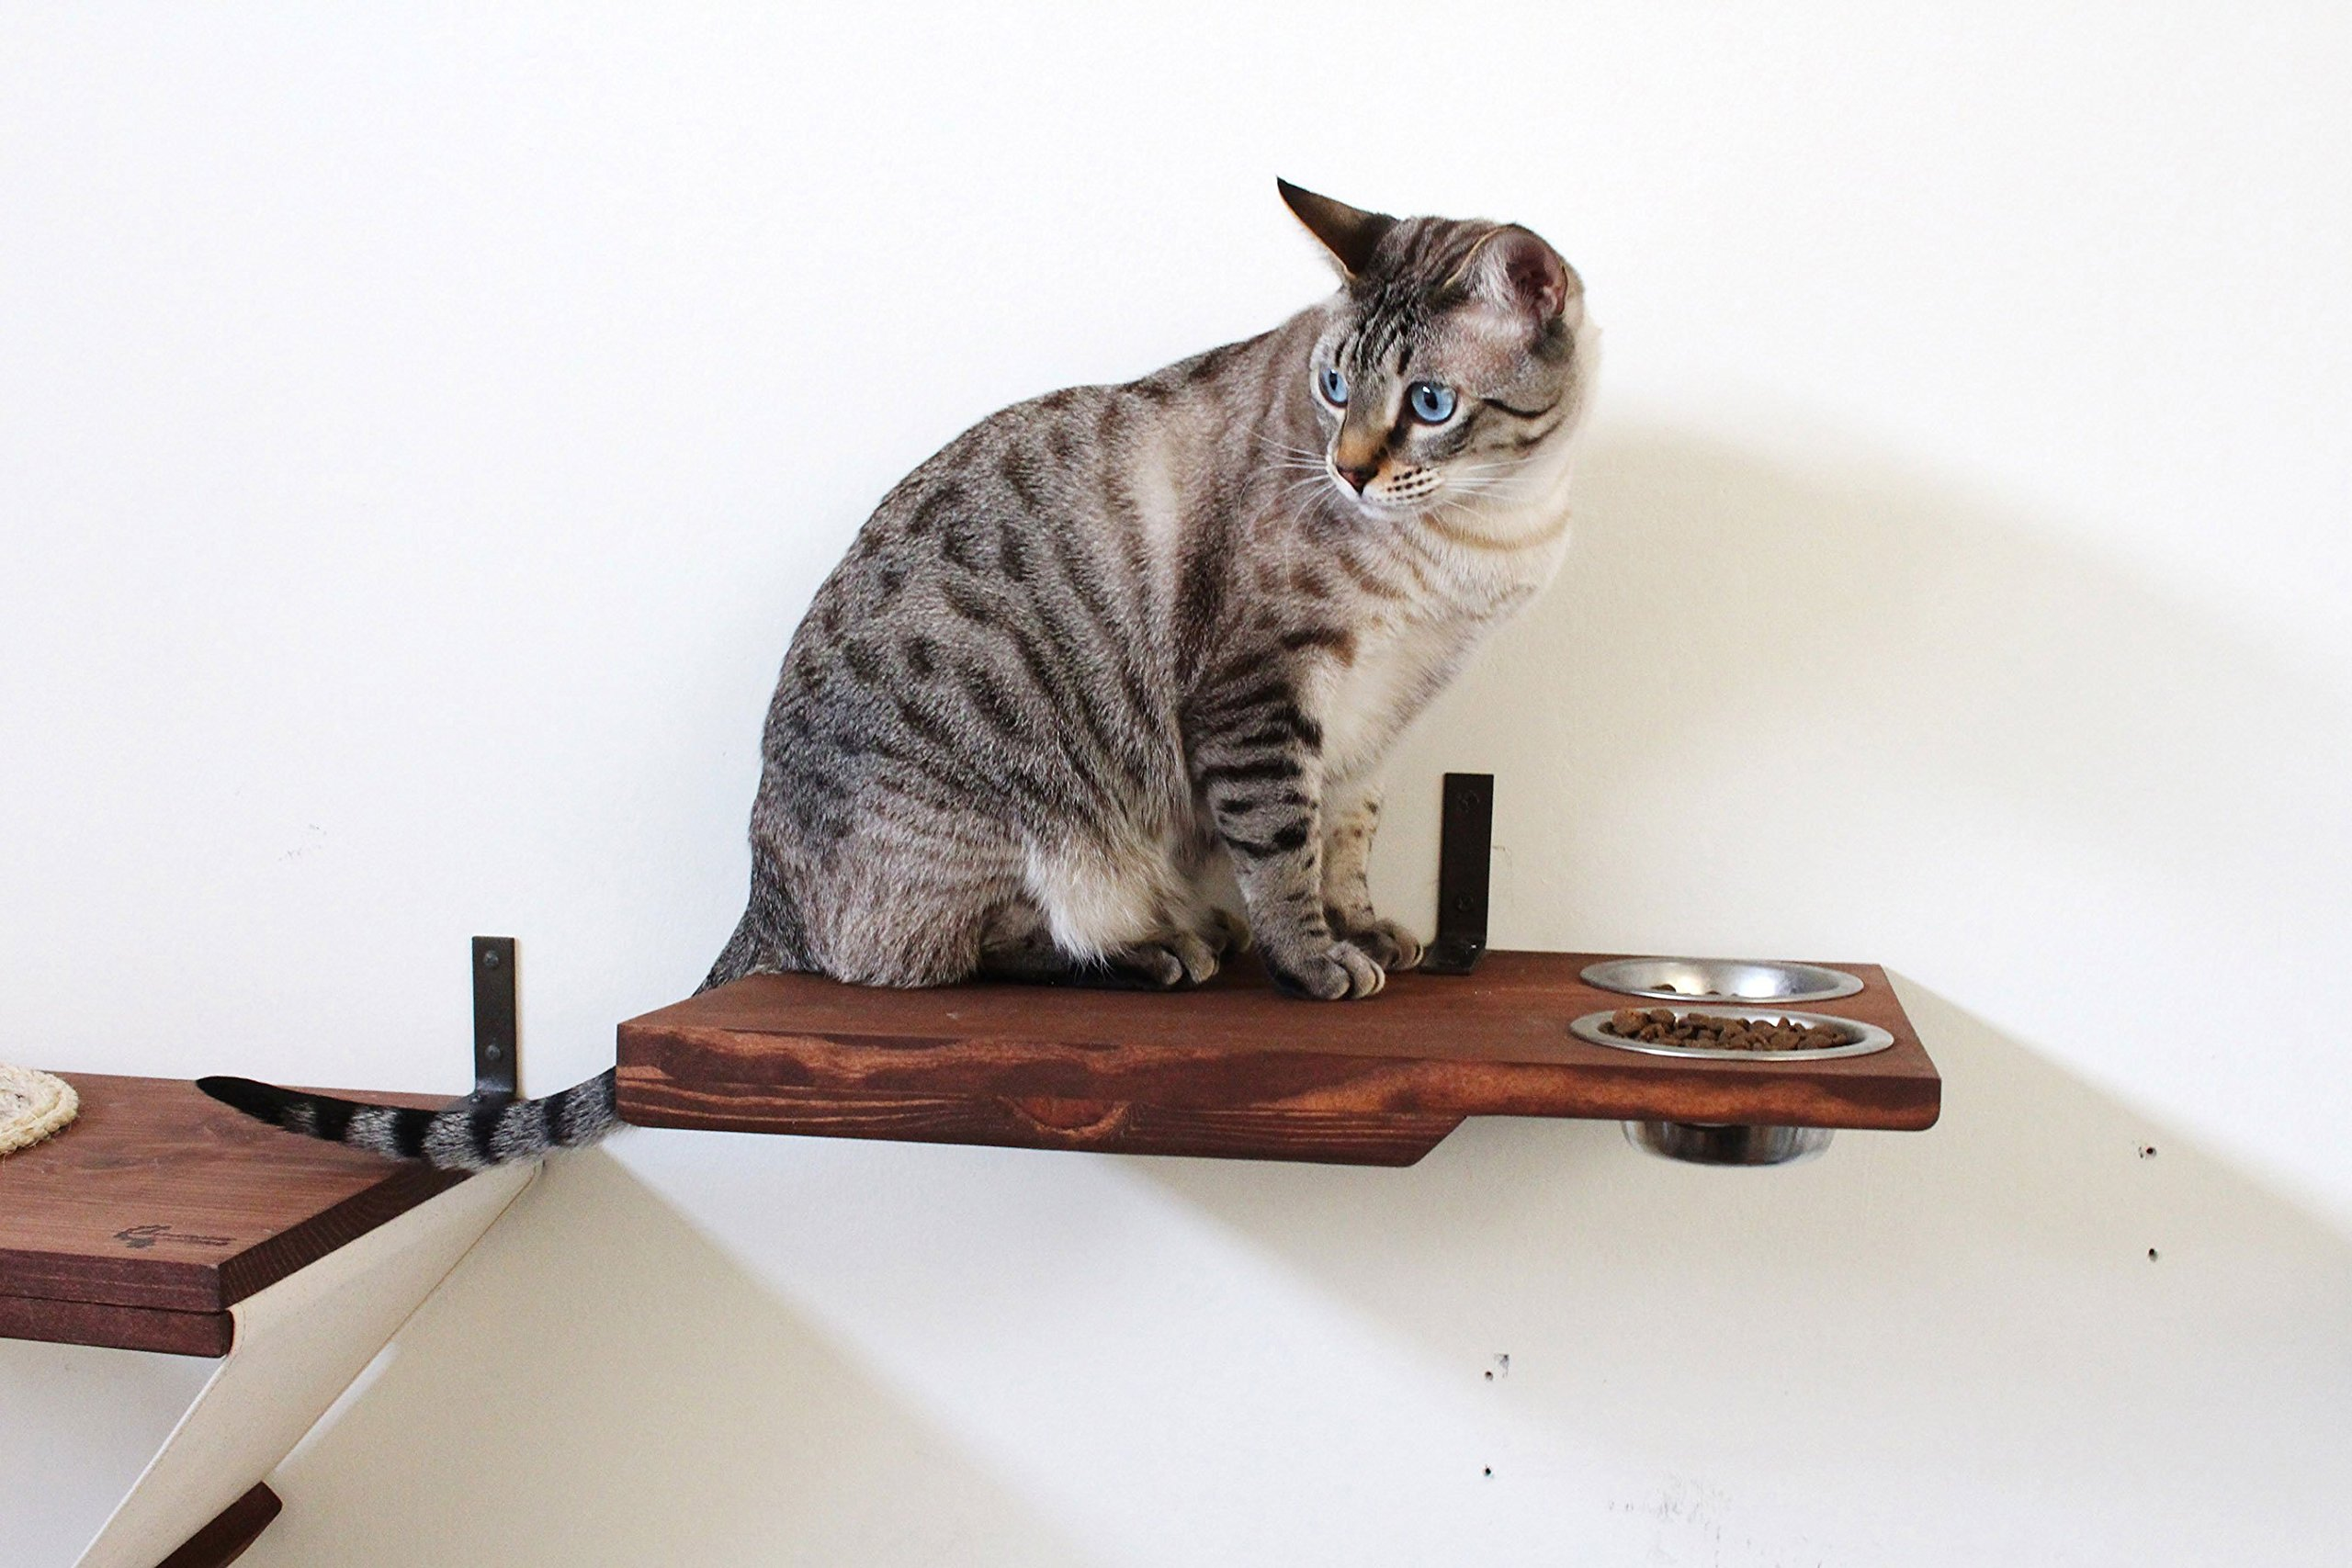 CatastrophiCreations Cat Dining Table Handcrafted Wall-Mounted Feeder Shelf by CatastrophiCreations